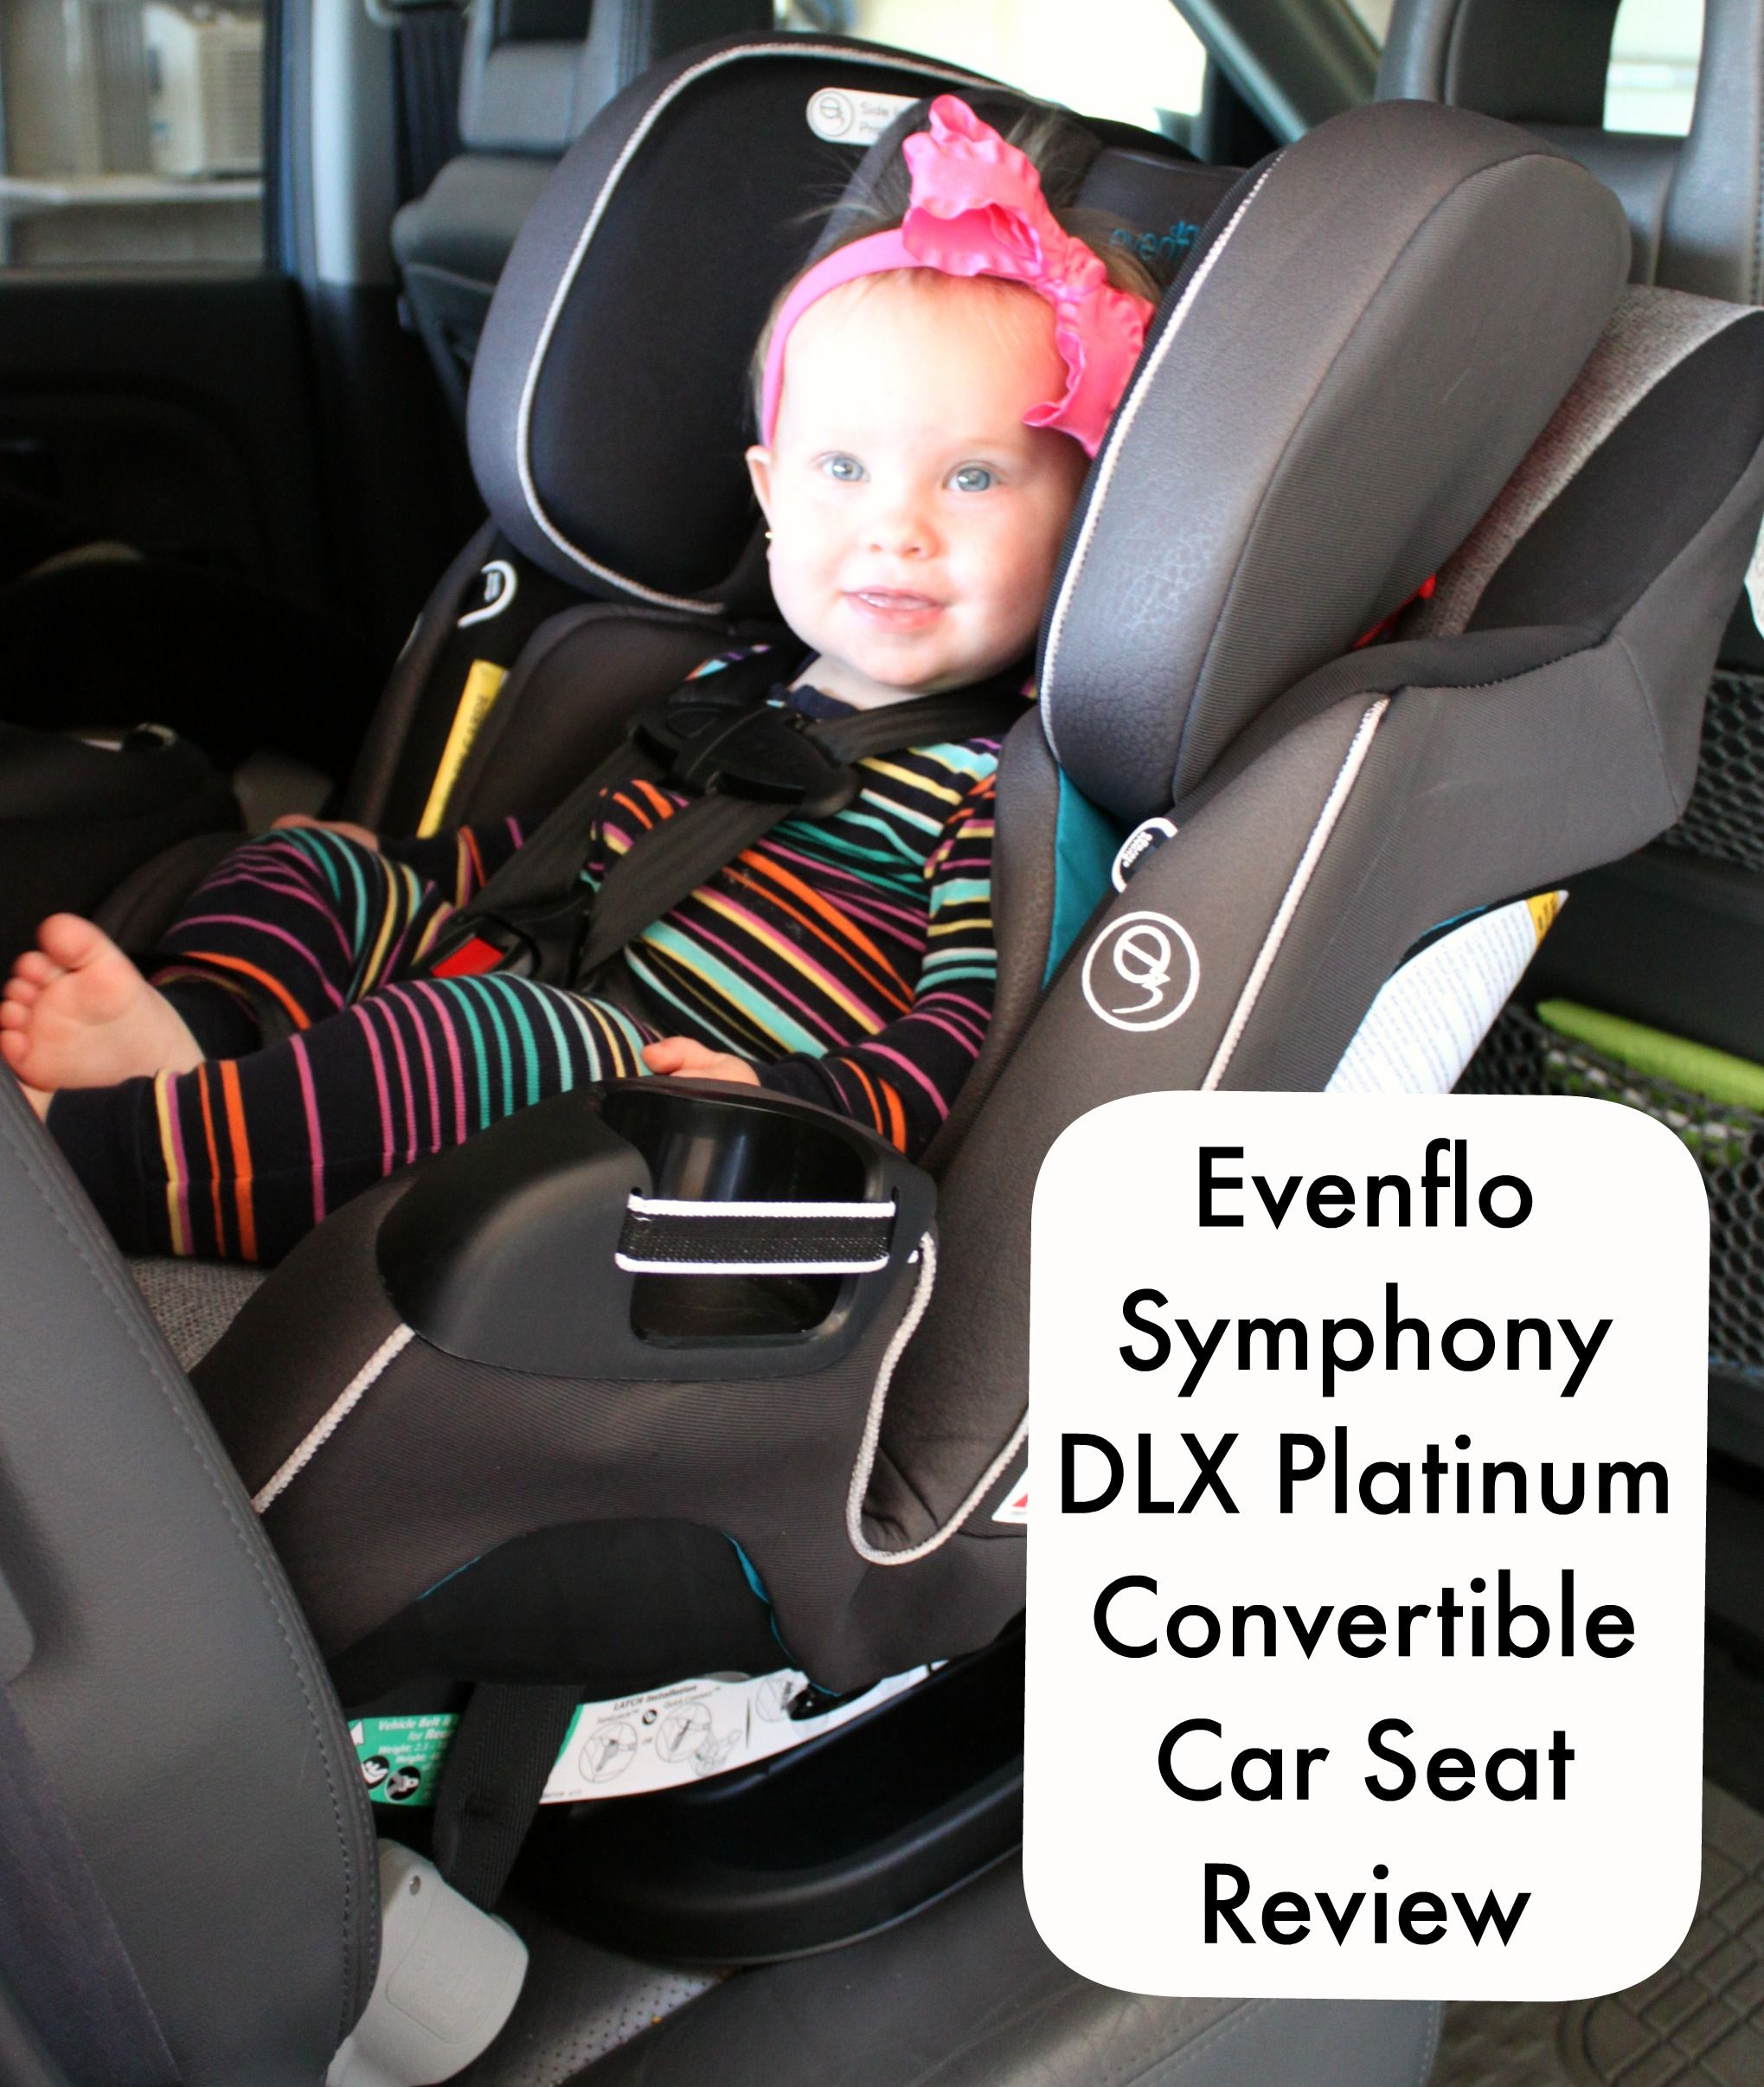 Evenflo Symphony Dlx Platinum Convertible Car Seat Review The Only You Ll Ever Need Evenfloplatinum Bare Feet On Dashboard